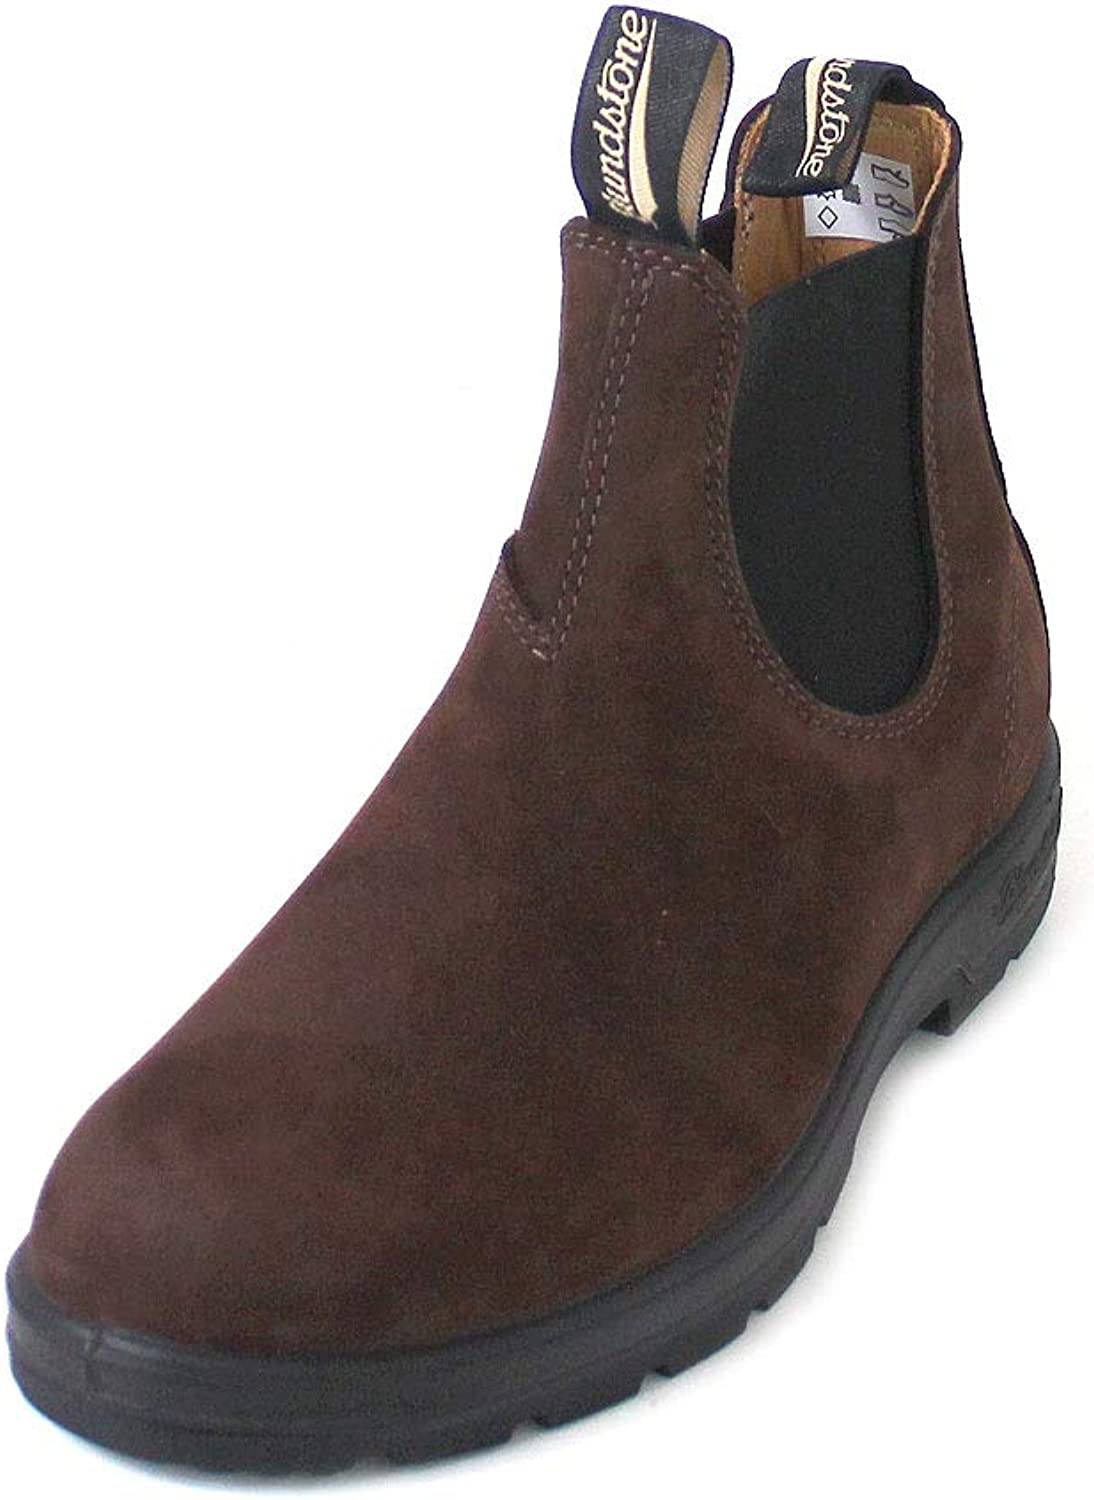 bluendstone 1606 Leather Lined in Brown Nubuck